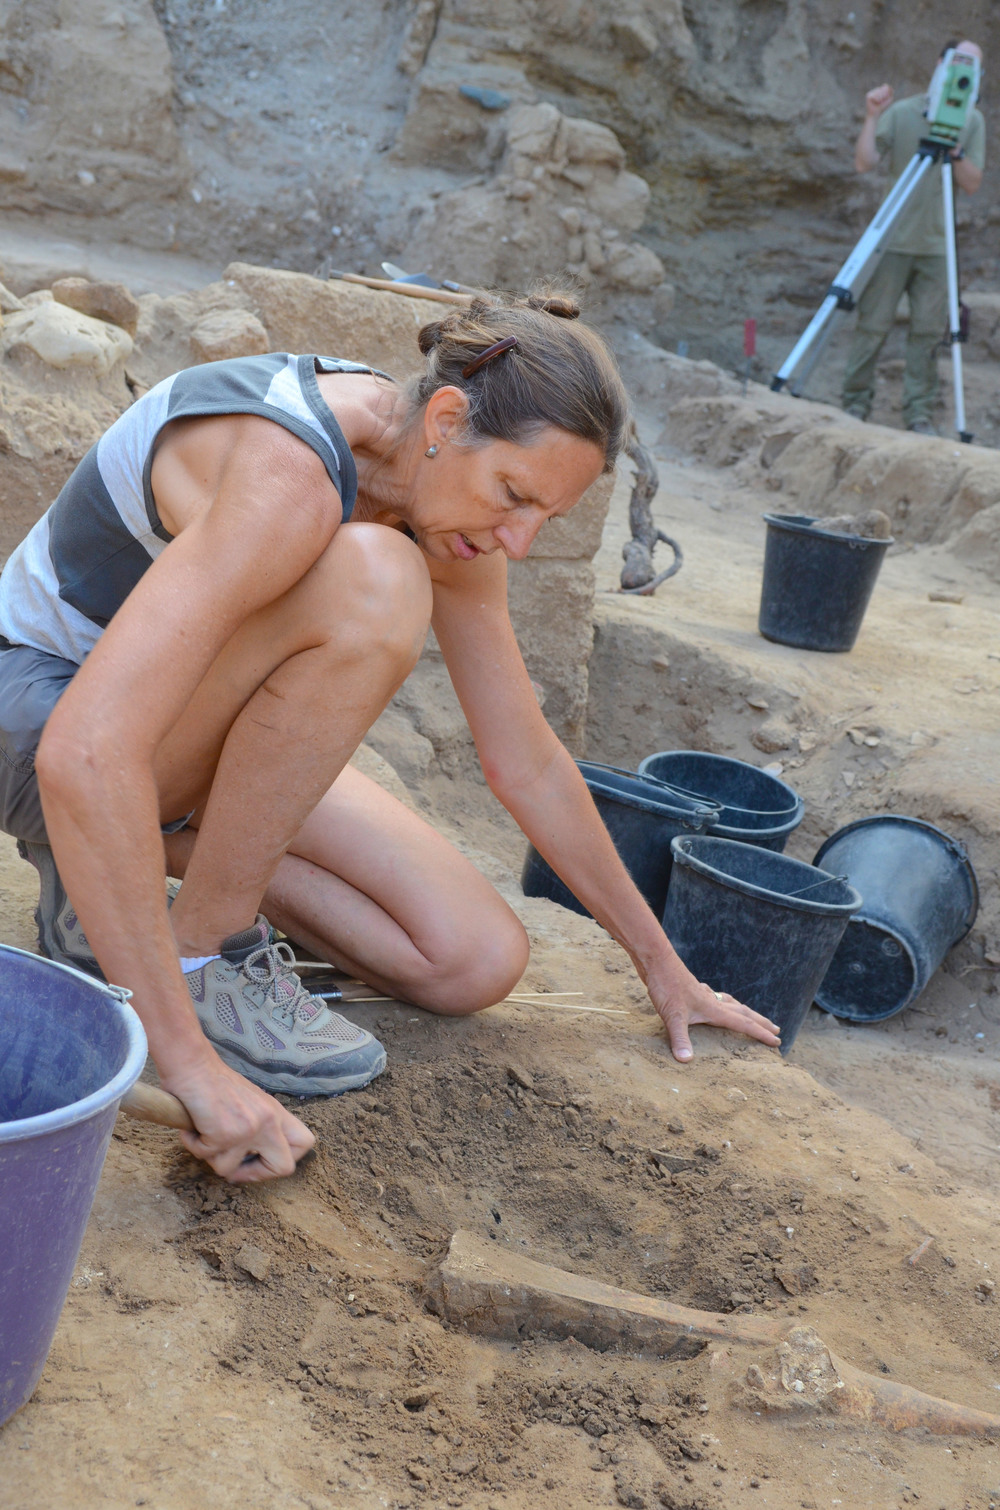 Excavating a donkey scapula